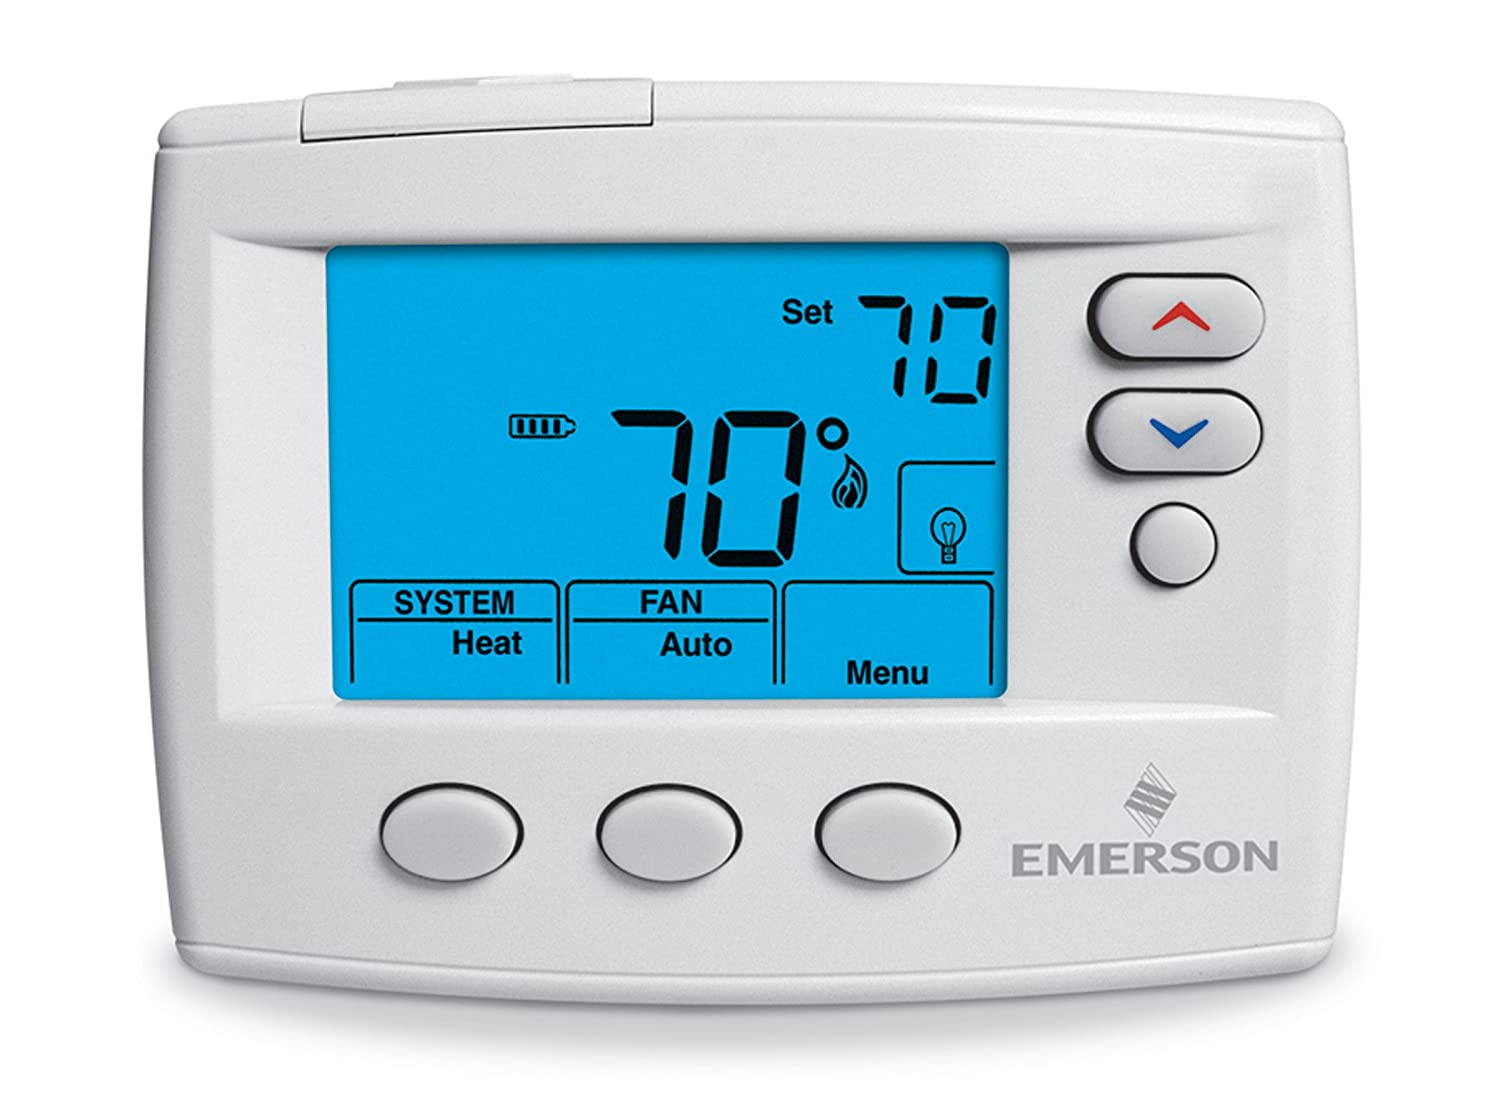 81w%2BvF7knGL._SL1500_ emerson 1f83c 11np conventional (1h 1c) non programmable wiring diagram for a emerson up310 thermostat at reclaimingppi.co